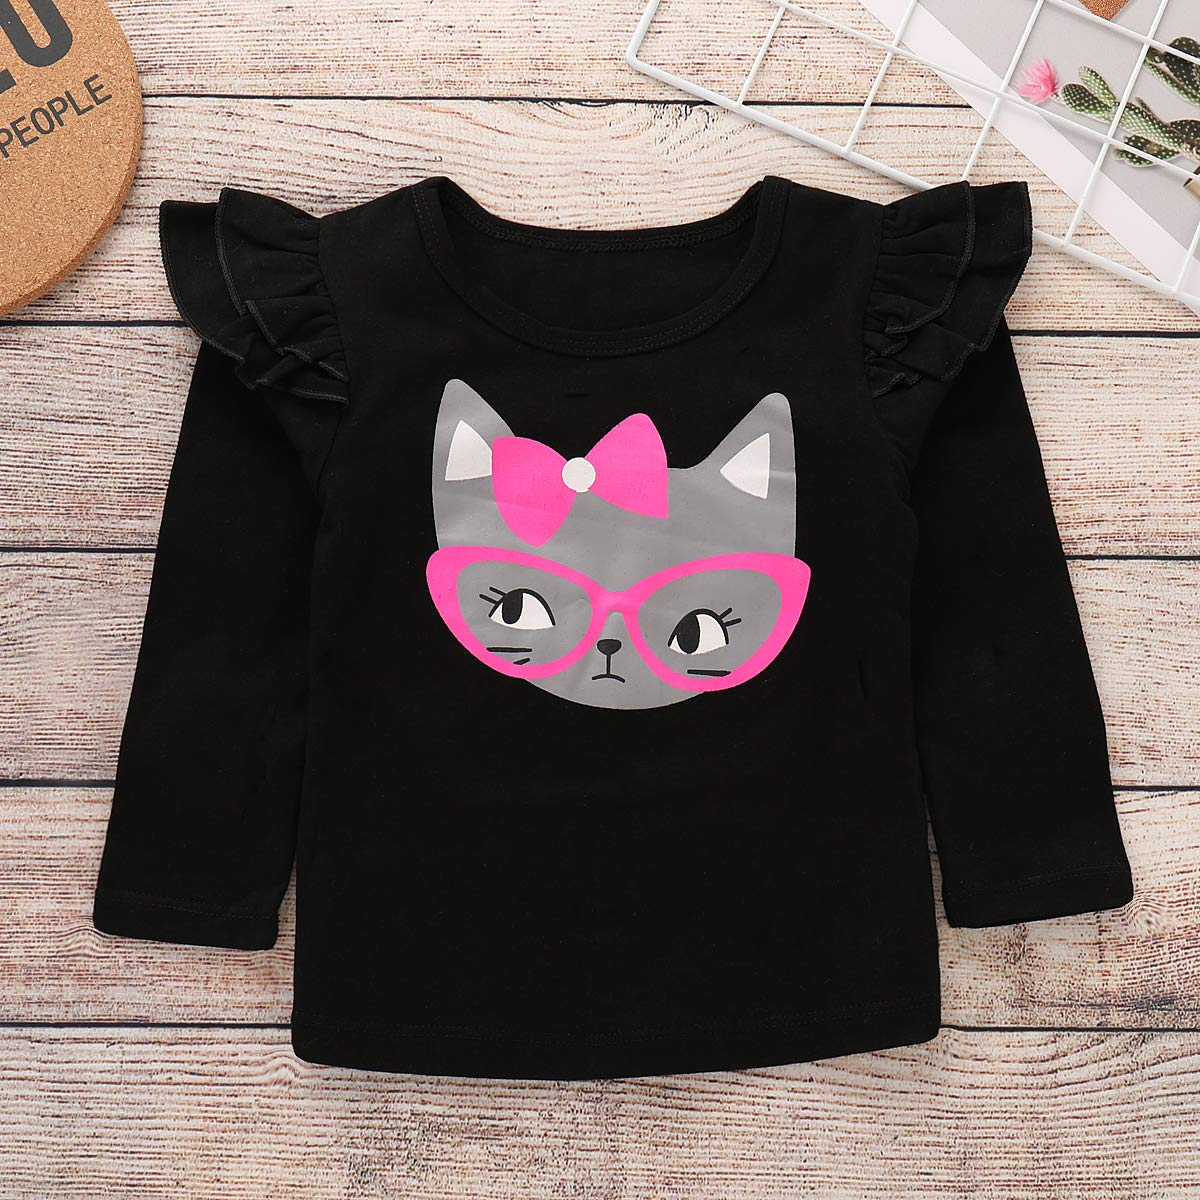 7129a0480d Amazon.com  Toddler Baby Girls Cut Cat Ruffle Long Sleeve Shirt Tops  Suspender Skirt Overalls Outfits  Clothing